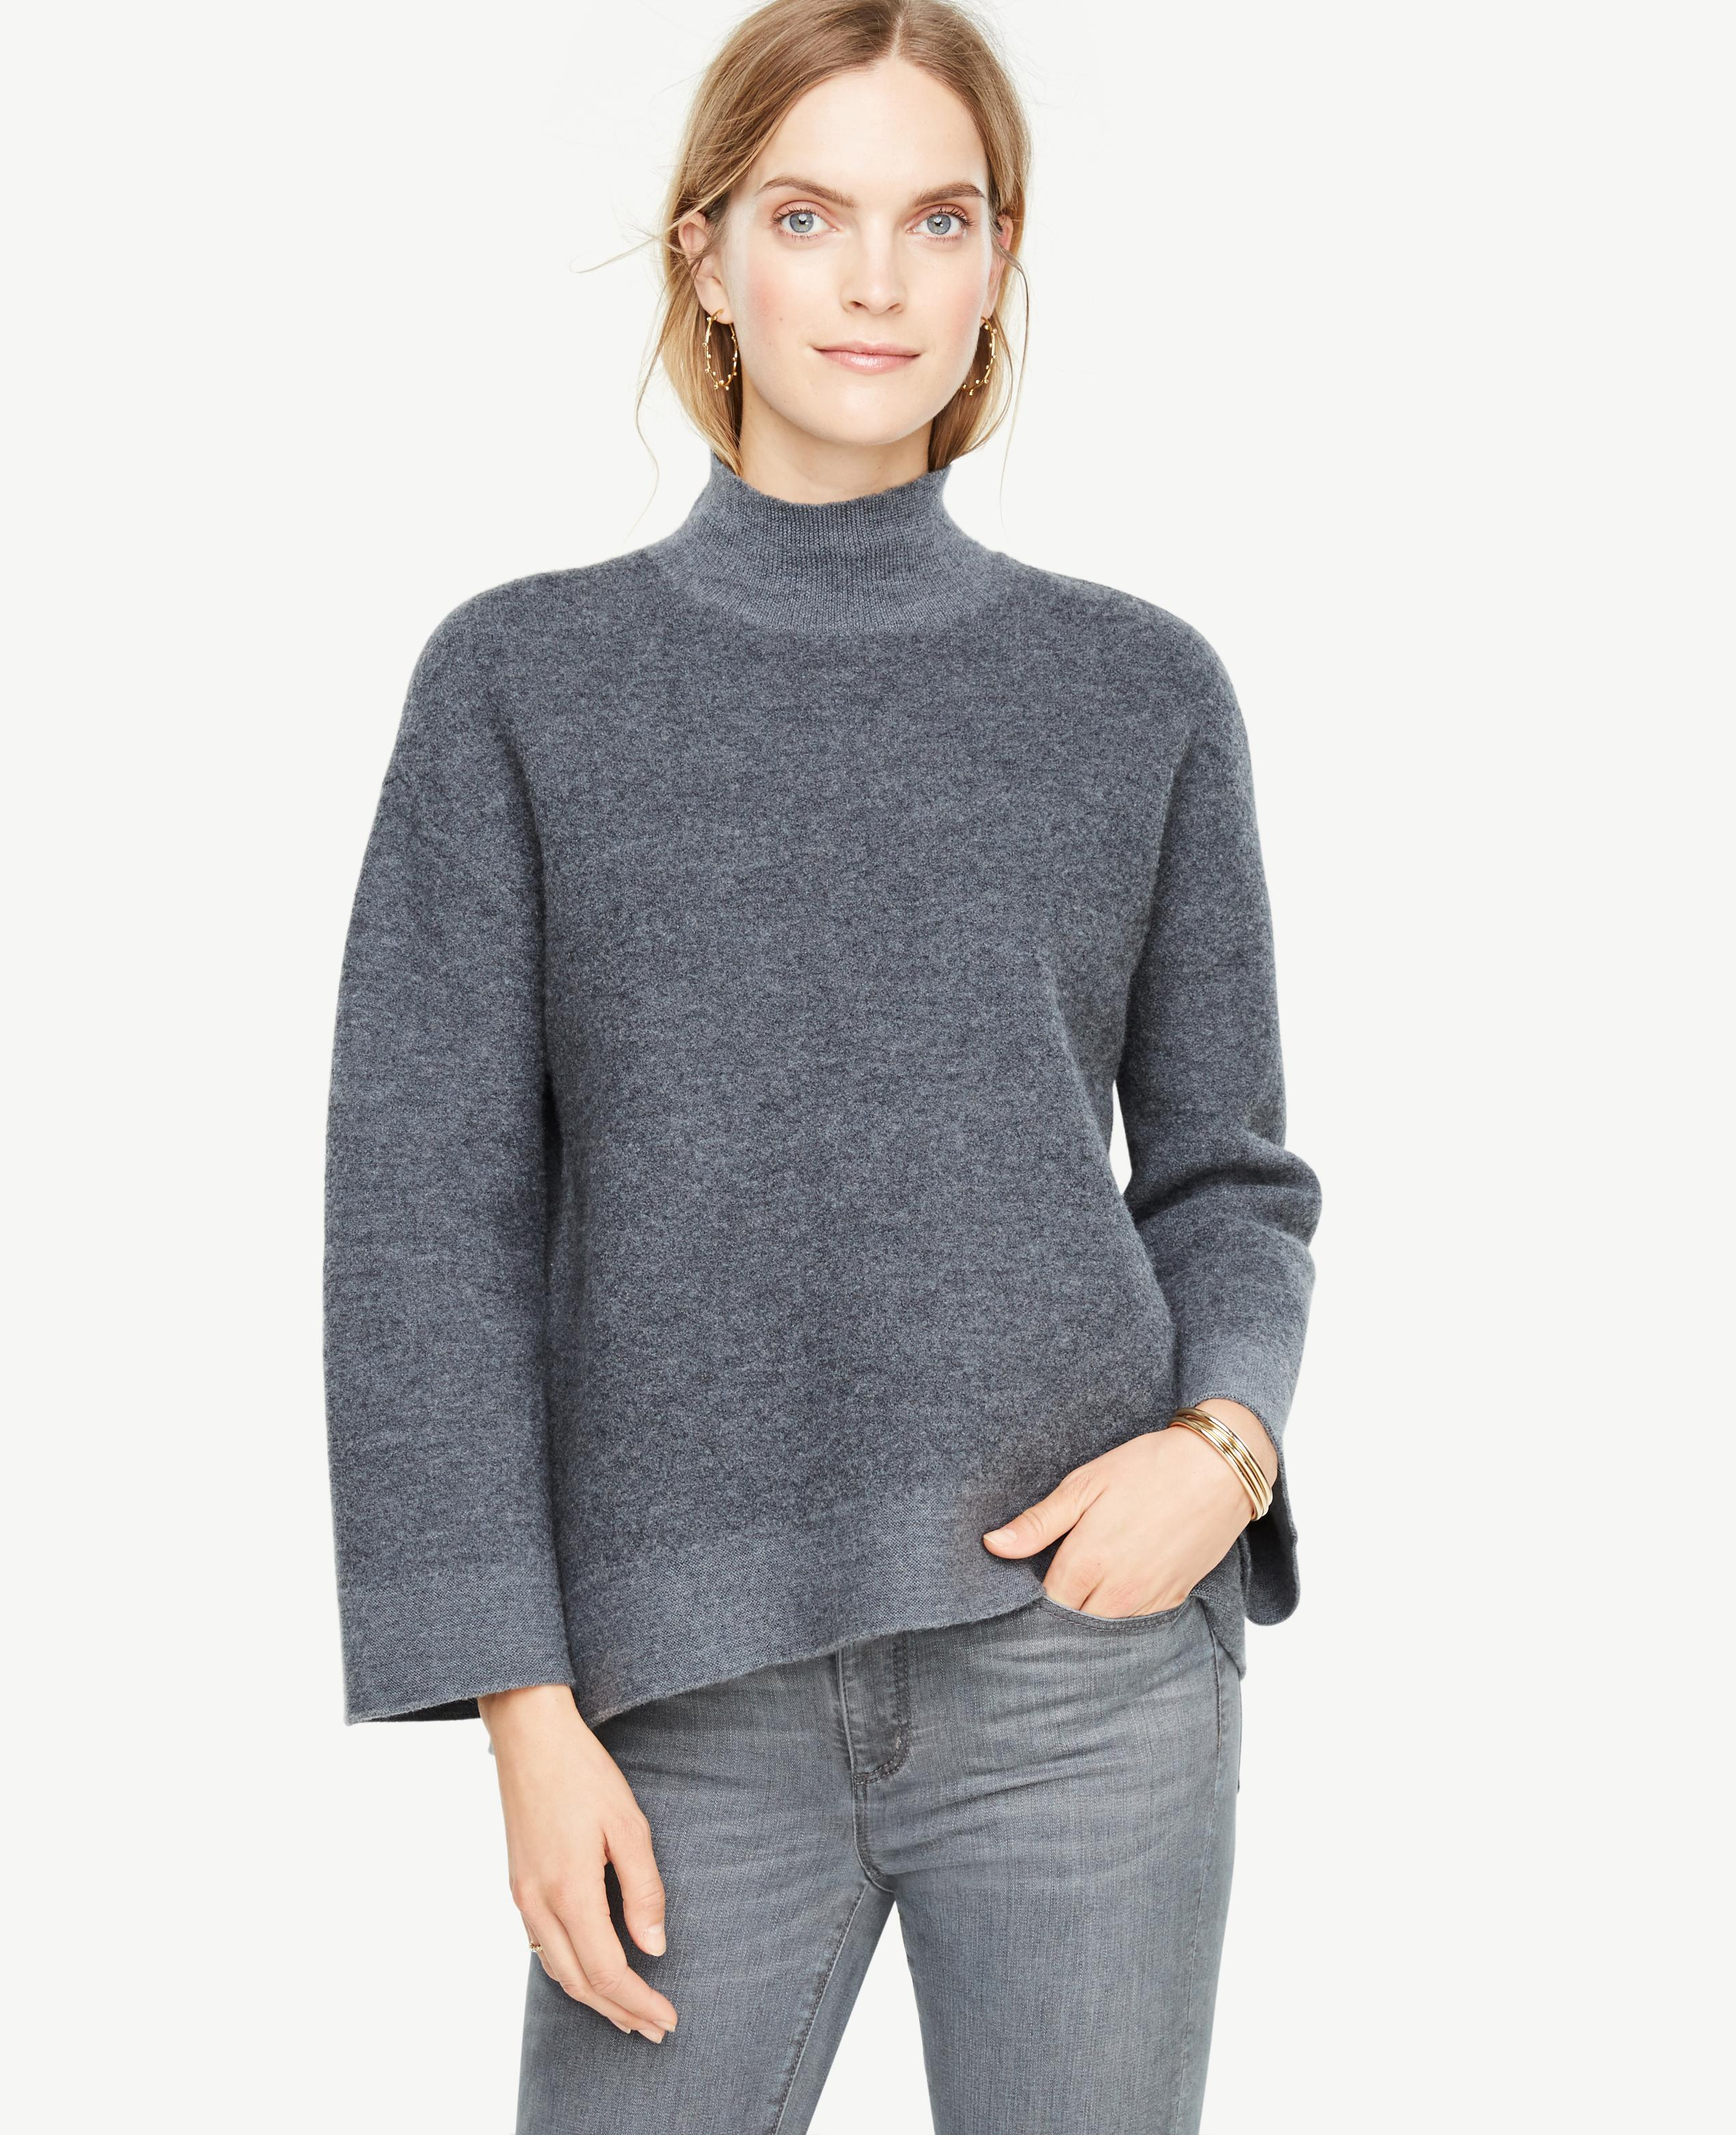 Ann taylor Boiled Wool Turtleneck Sweater in Gray | Lyst